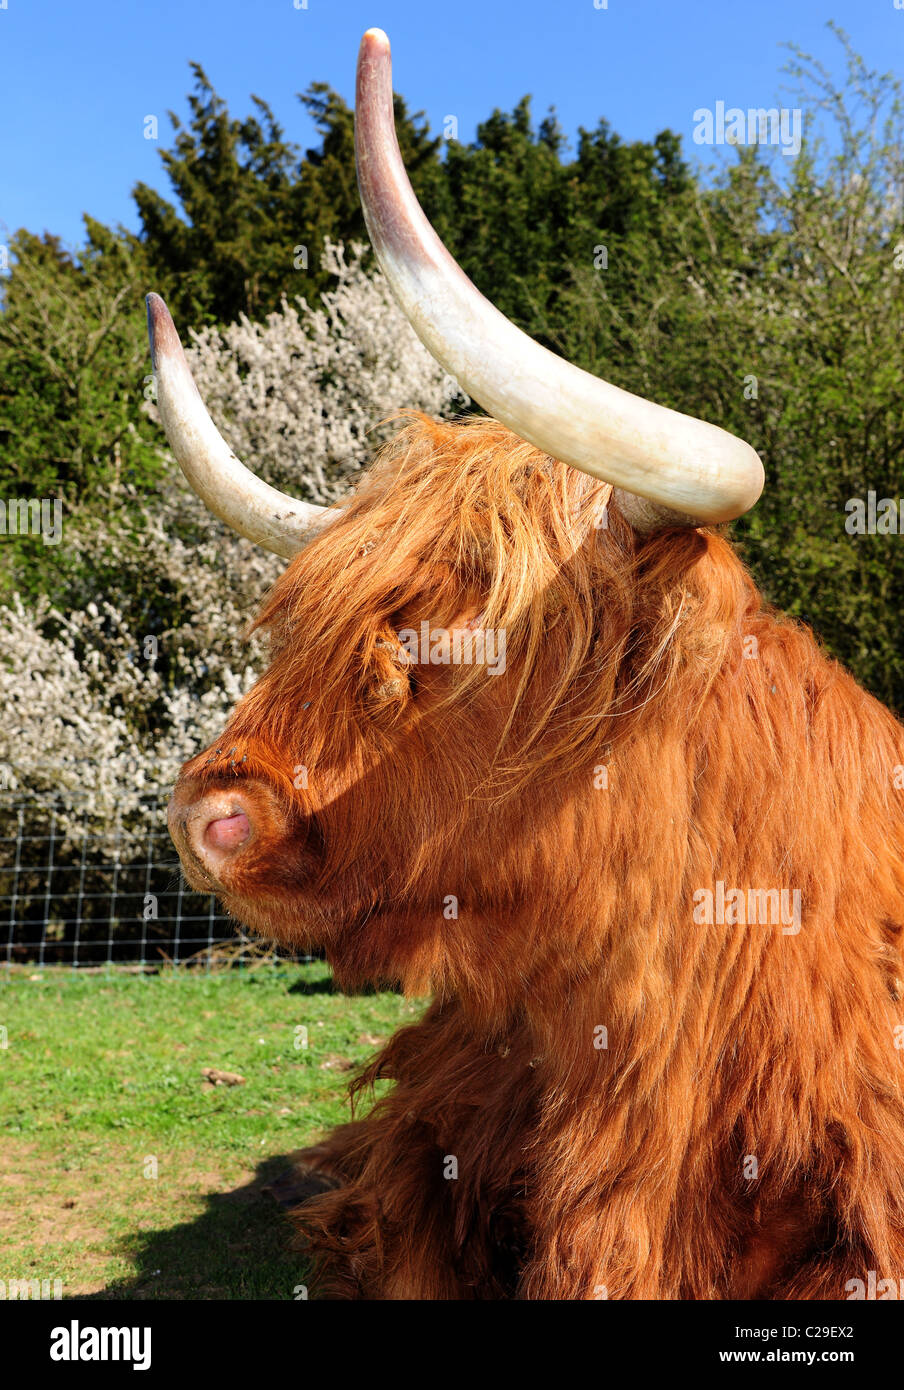 Highland Kyloe beef cattle. A Scottish breed widely exported to the USA and Australia. - Stock Image